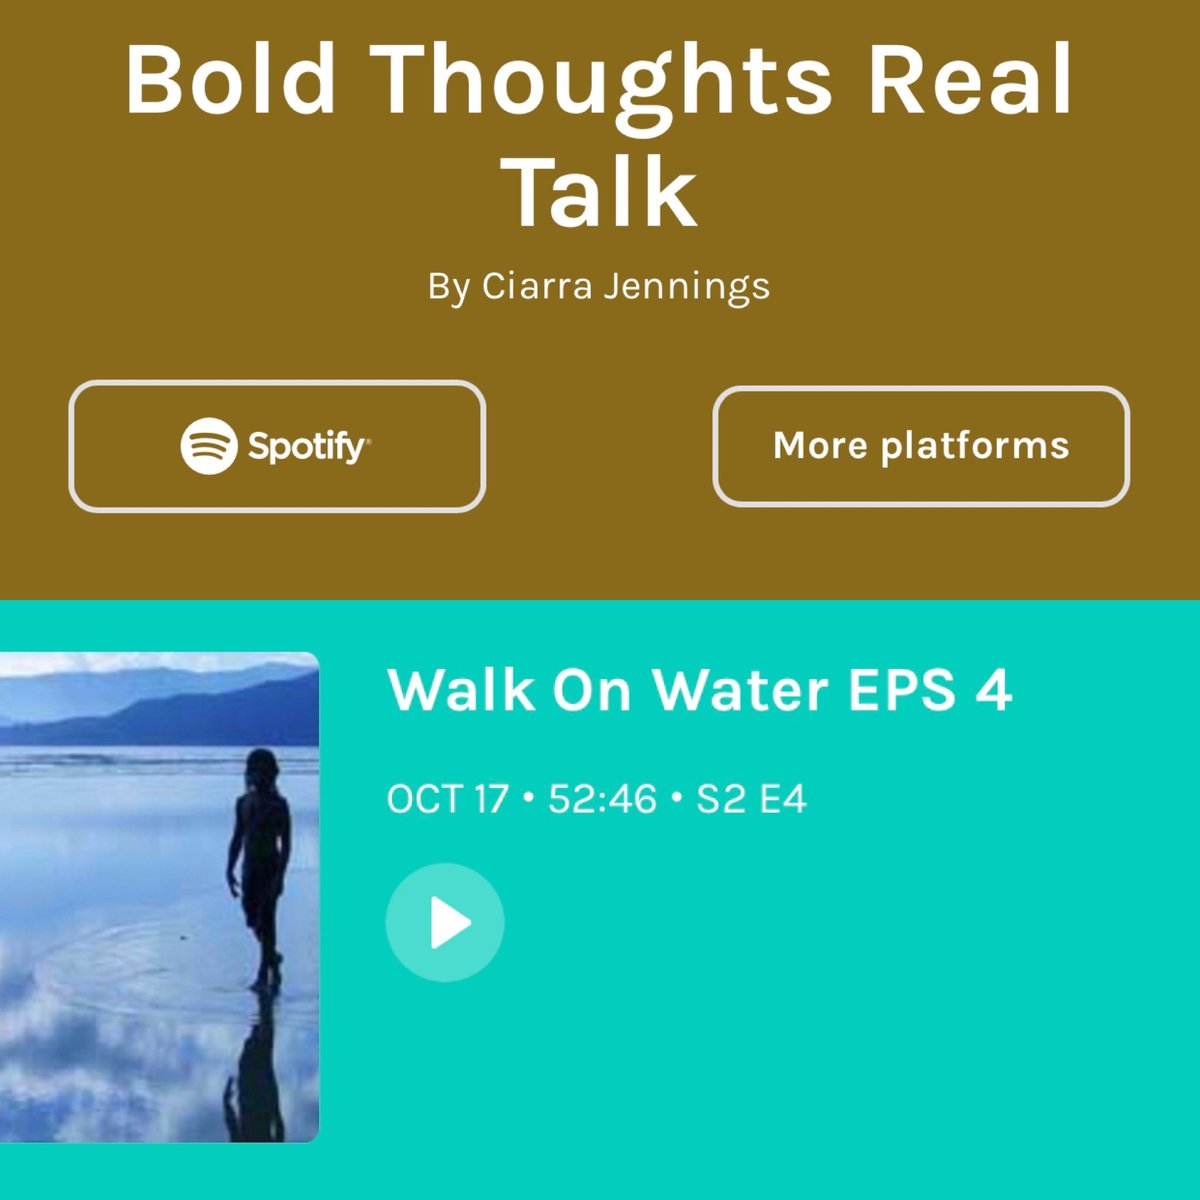 Check out the latest upload! New/Old podcast! • • #selfhelp #podcast #podcasting #podcastlife #podcaster #podcastersofinstagram #podcasters #podcastshow #spotify #applepodcasts #itunes #podcastlove #podcastaddict #podcastinglife #youtube  #newpodcast #podcastmovement https://t.co/l5bswjmAID